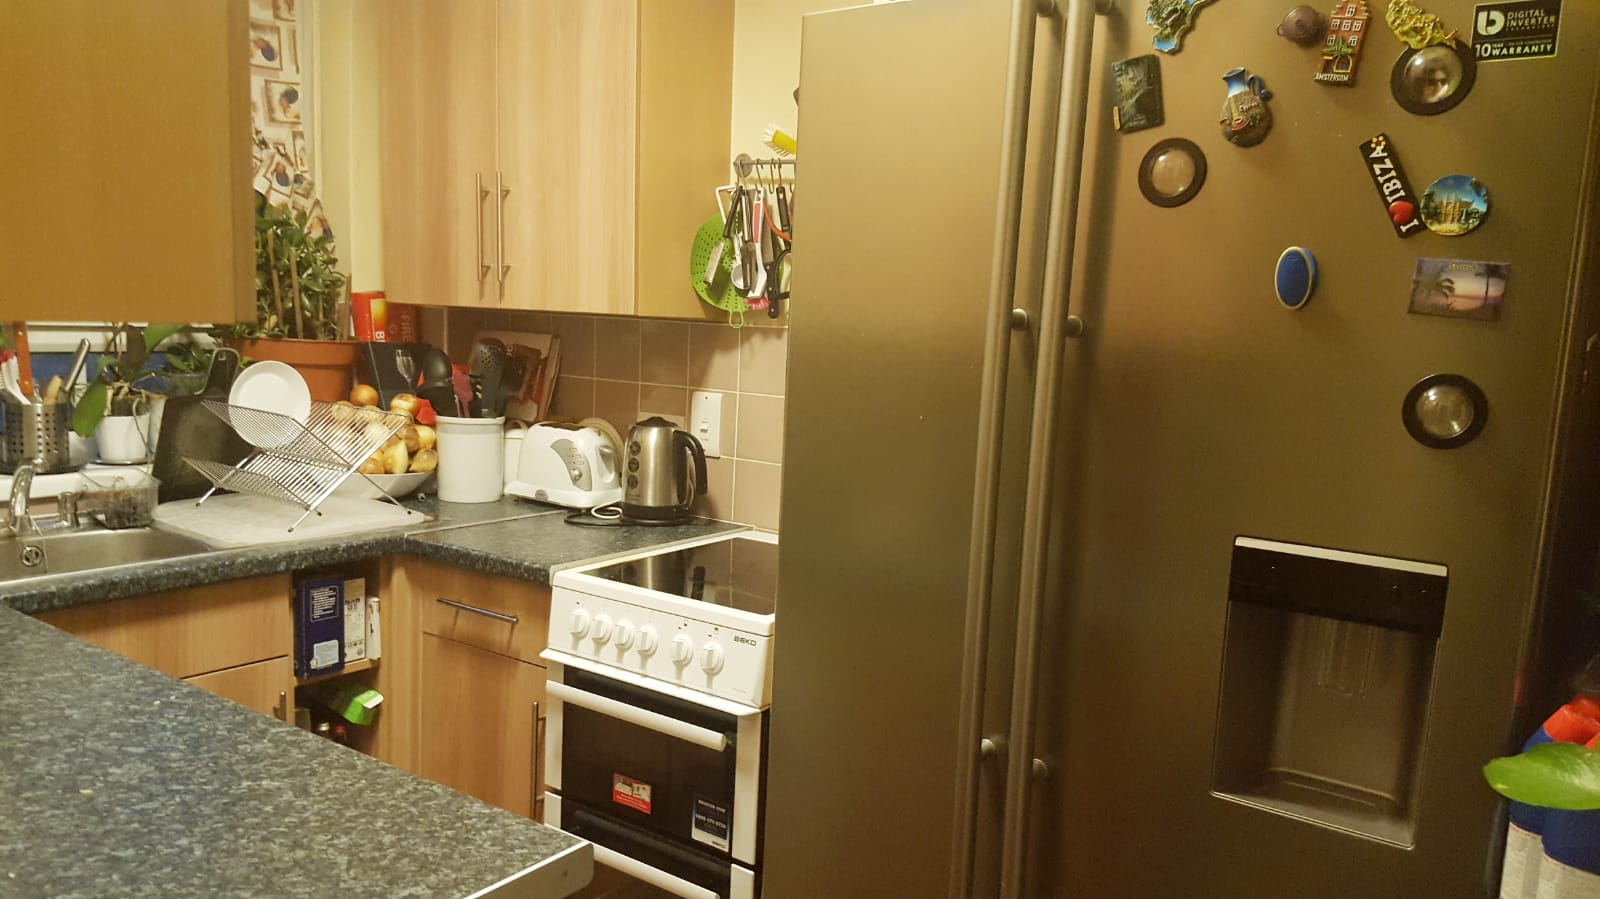 *** Duplex Apartment *** Over 1st & 2nd floors. Larger than average double for master Bedroom. 2nd bedroom standard room double. £1600 + £100 contribution to heating & hot water per month